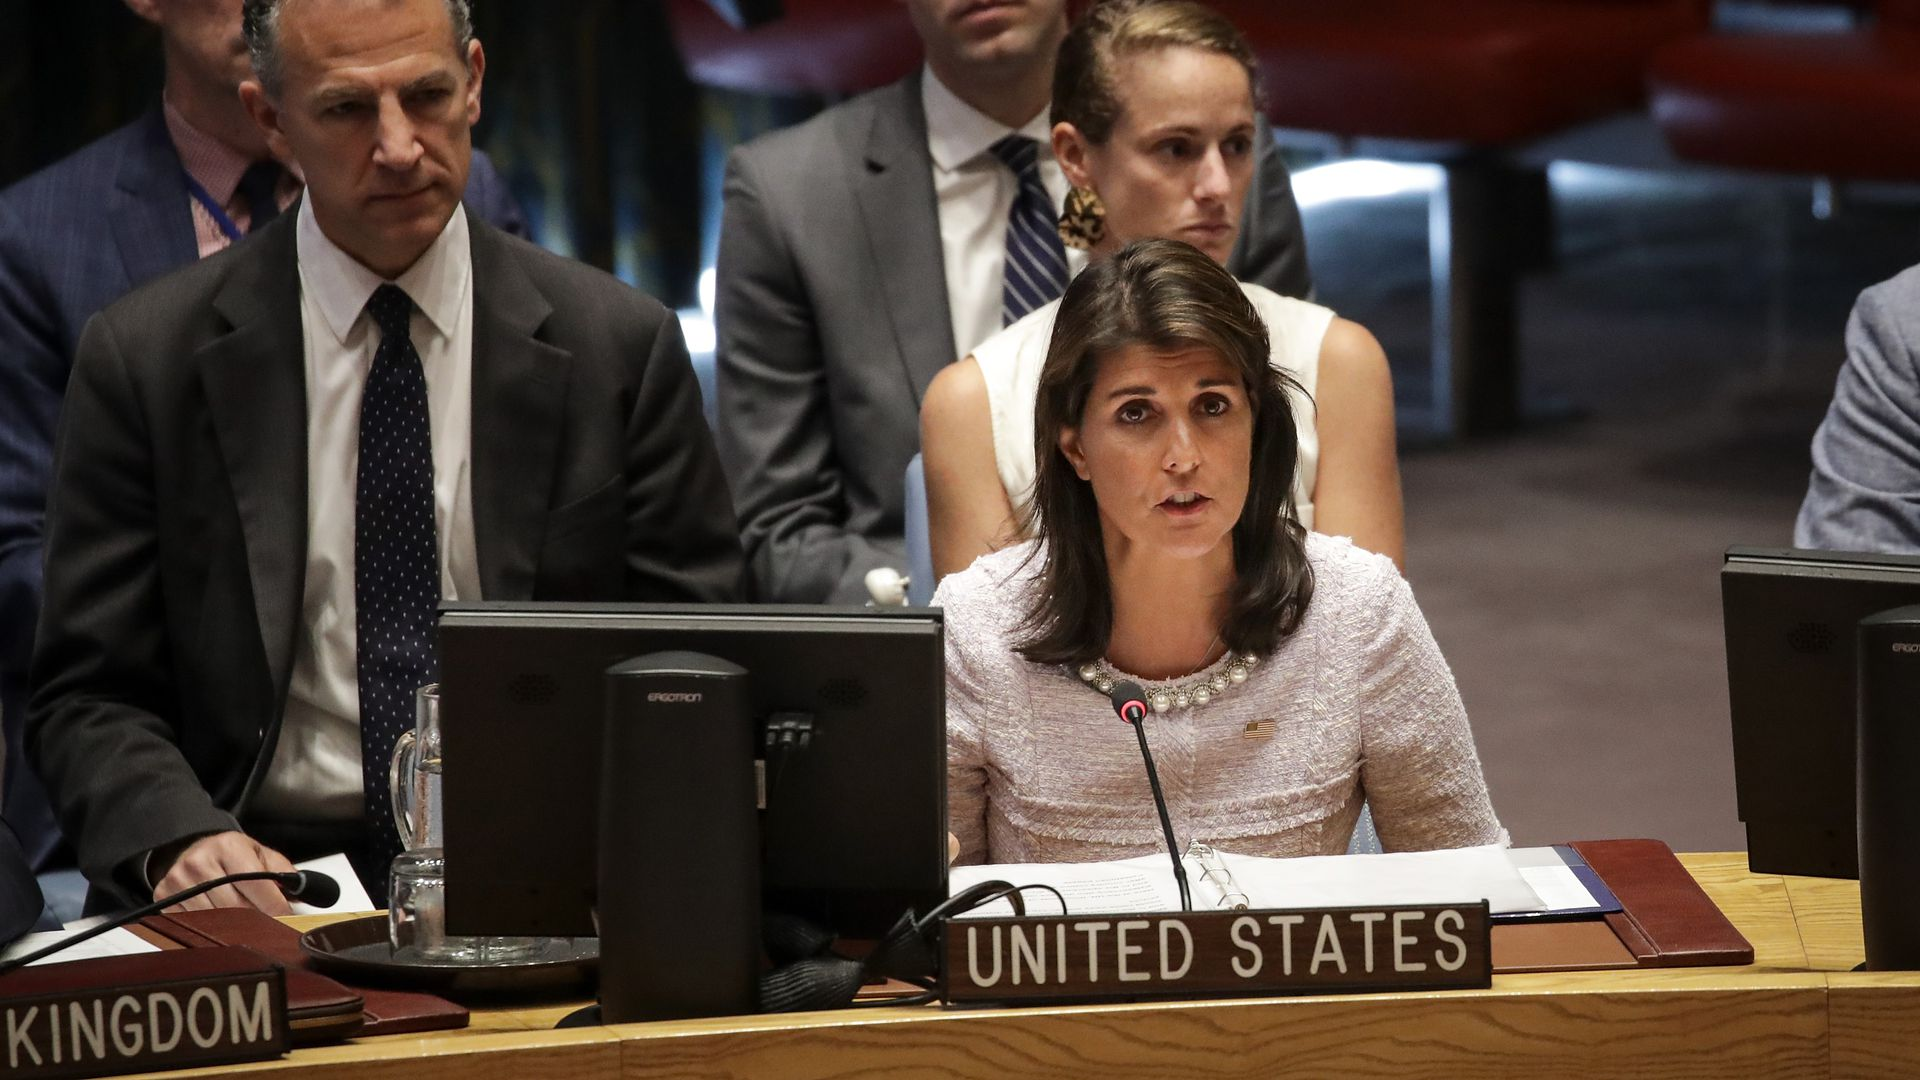 Ambassador to the United Nations Nikki Haley speaks during a United Nations Security Council meeting at UN Headquarters, July 24, 2018 in New York City.